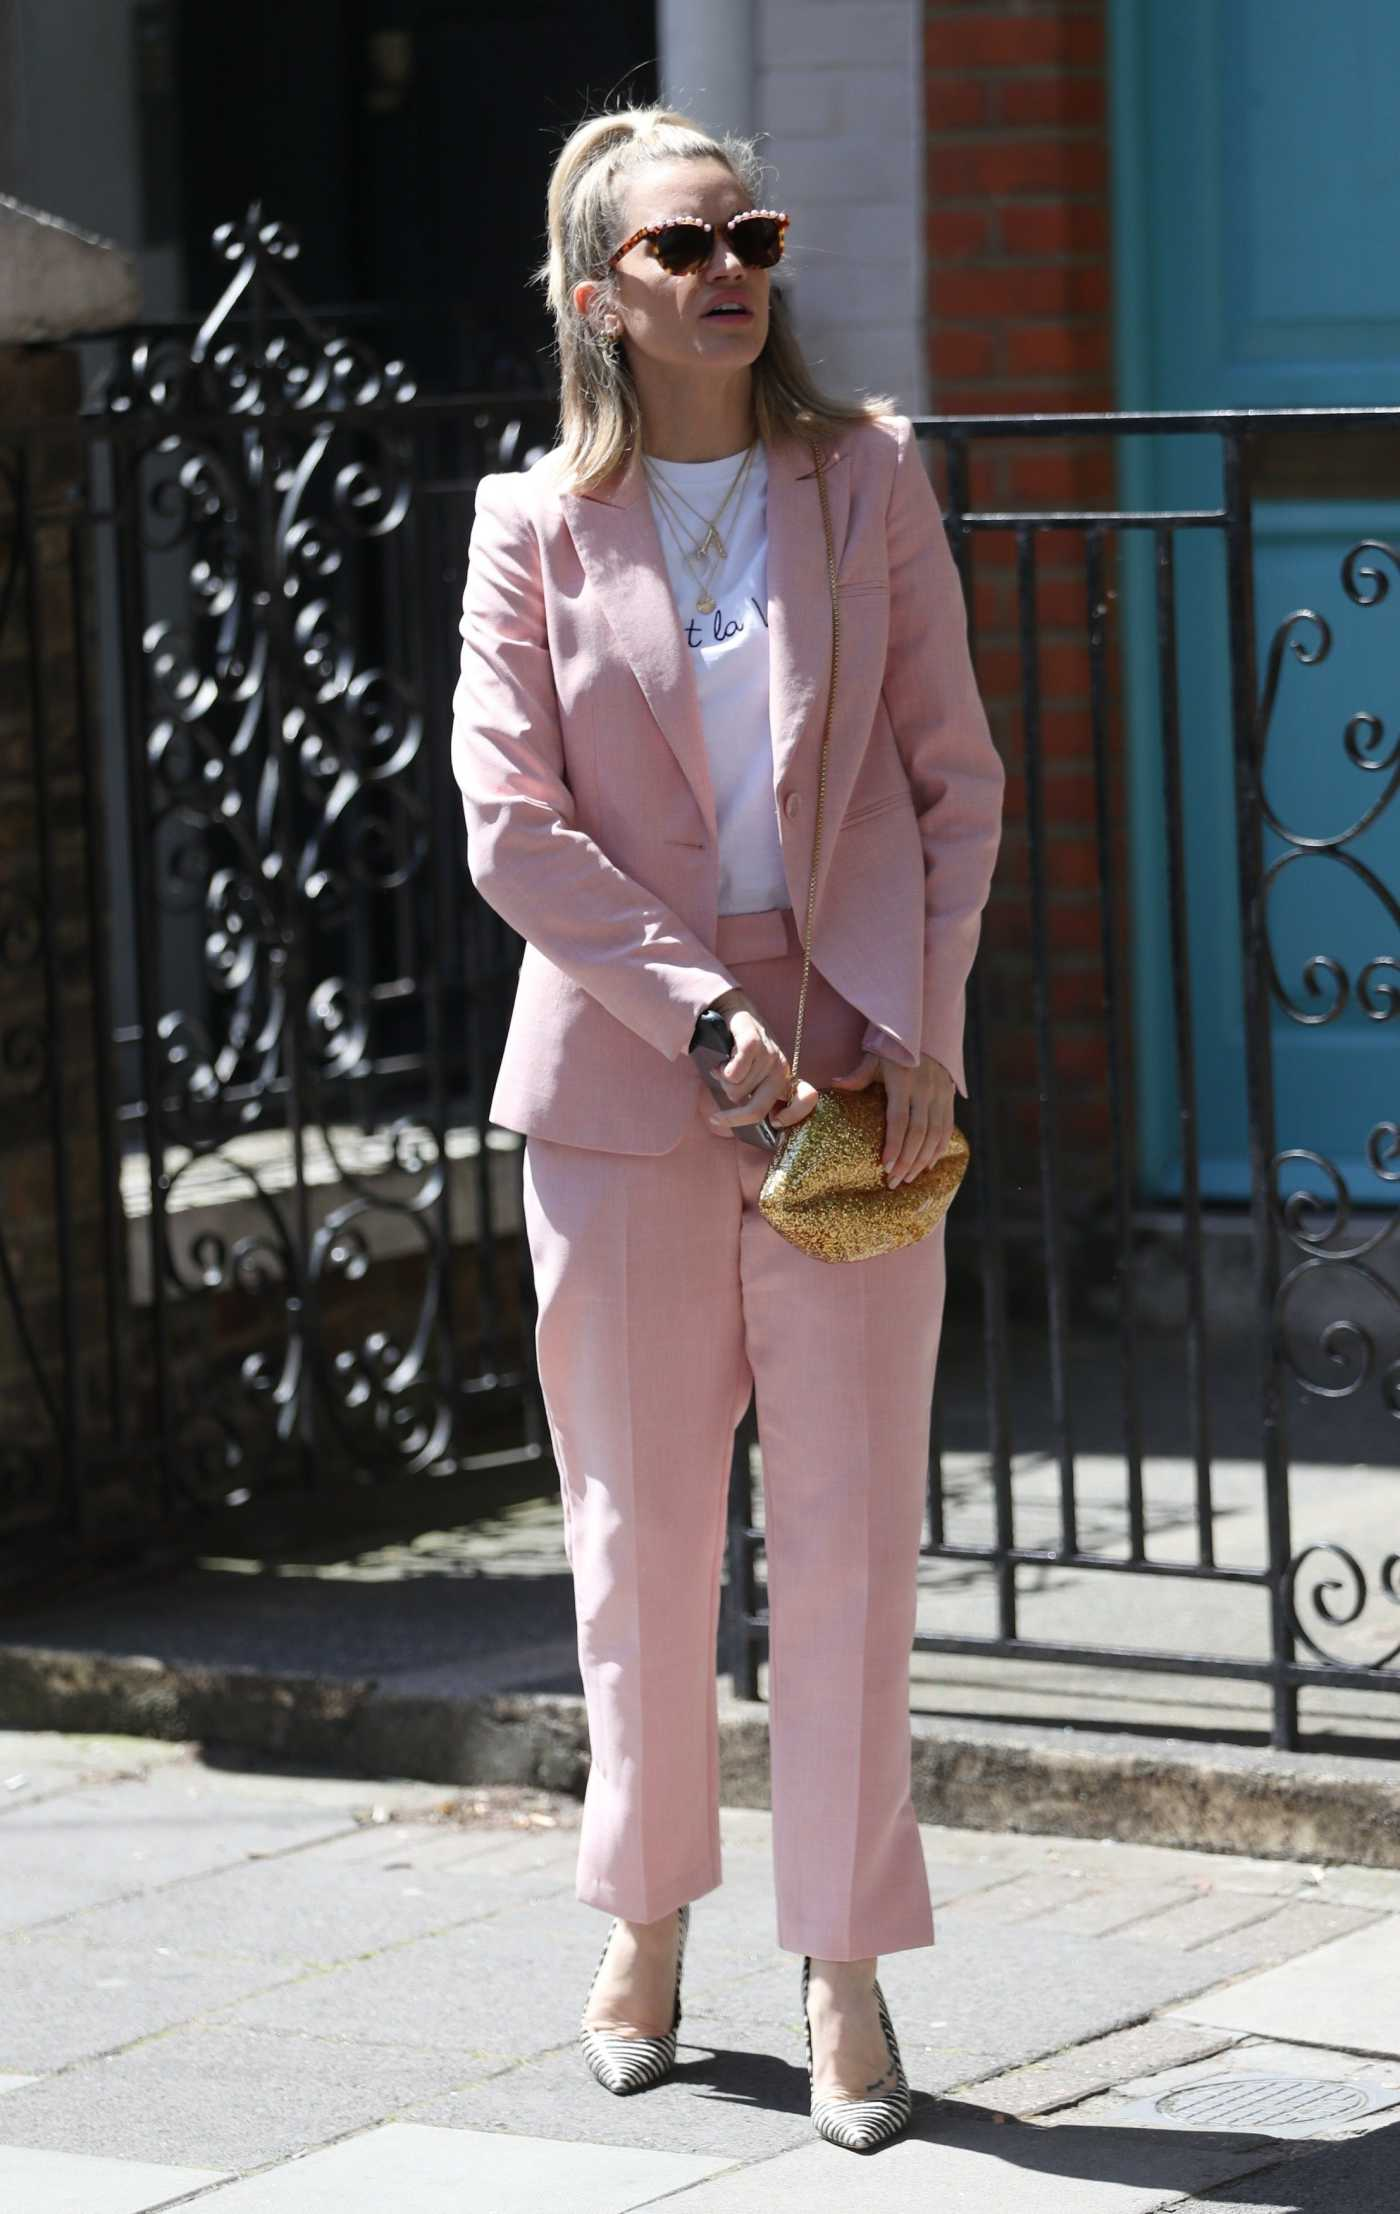 Ashley Roberts in a PInk Suit Leaves BBC's Saturday Kitchen TV Show in London 06/22/2019